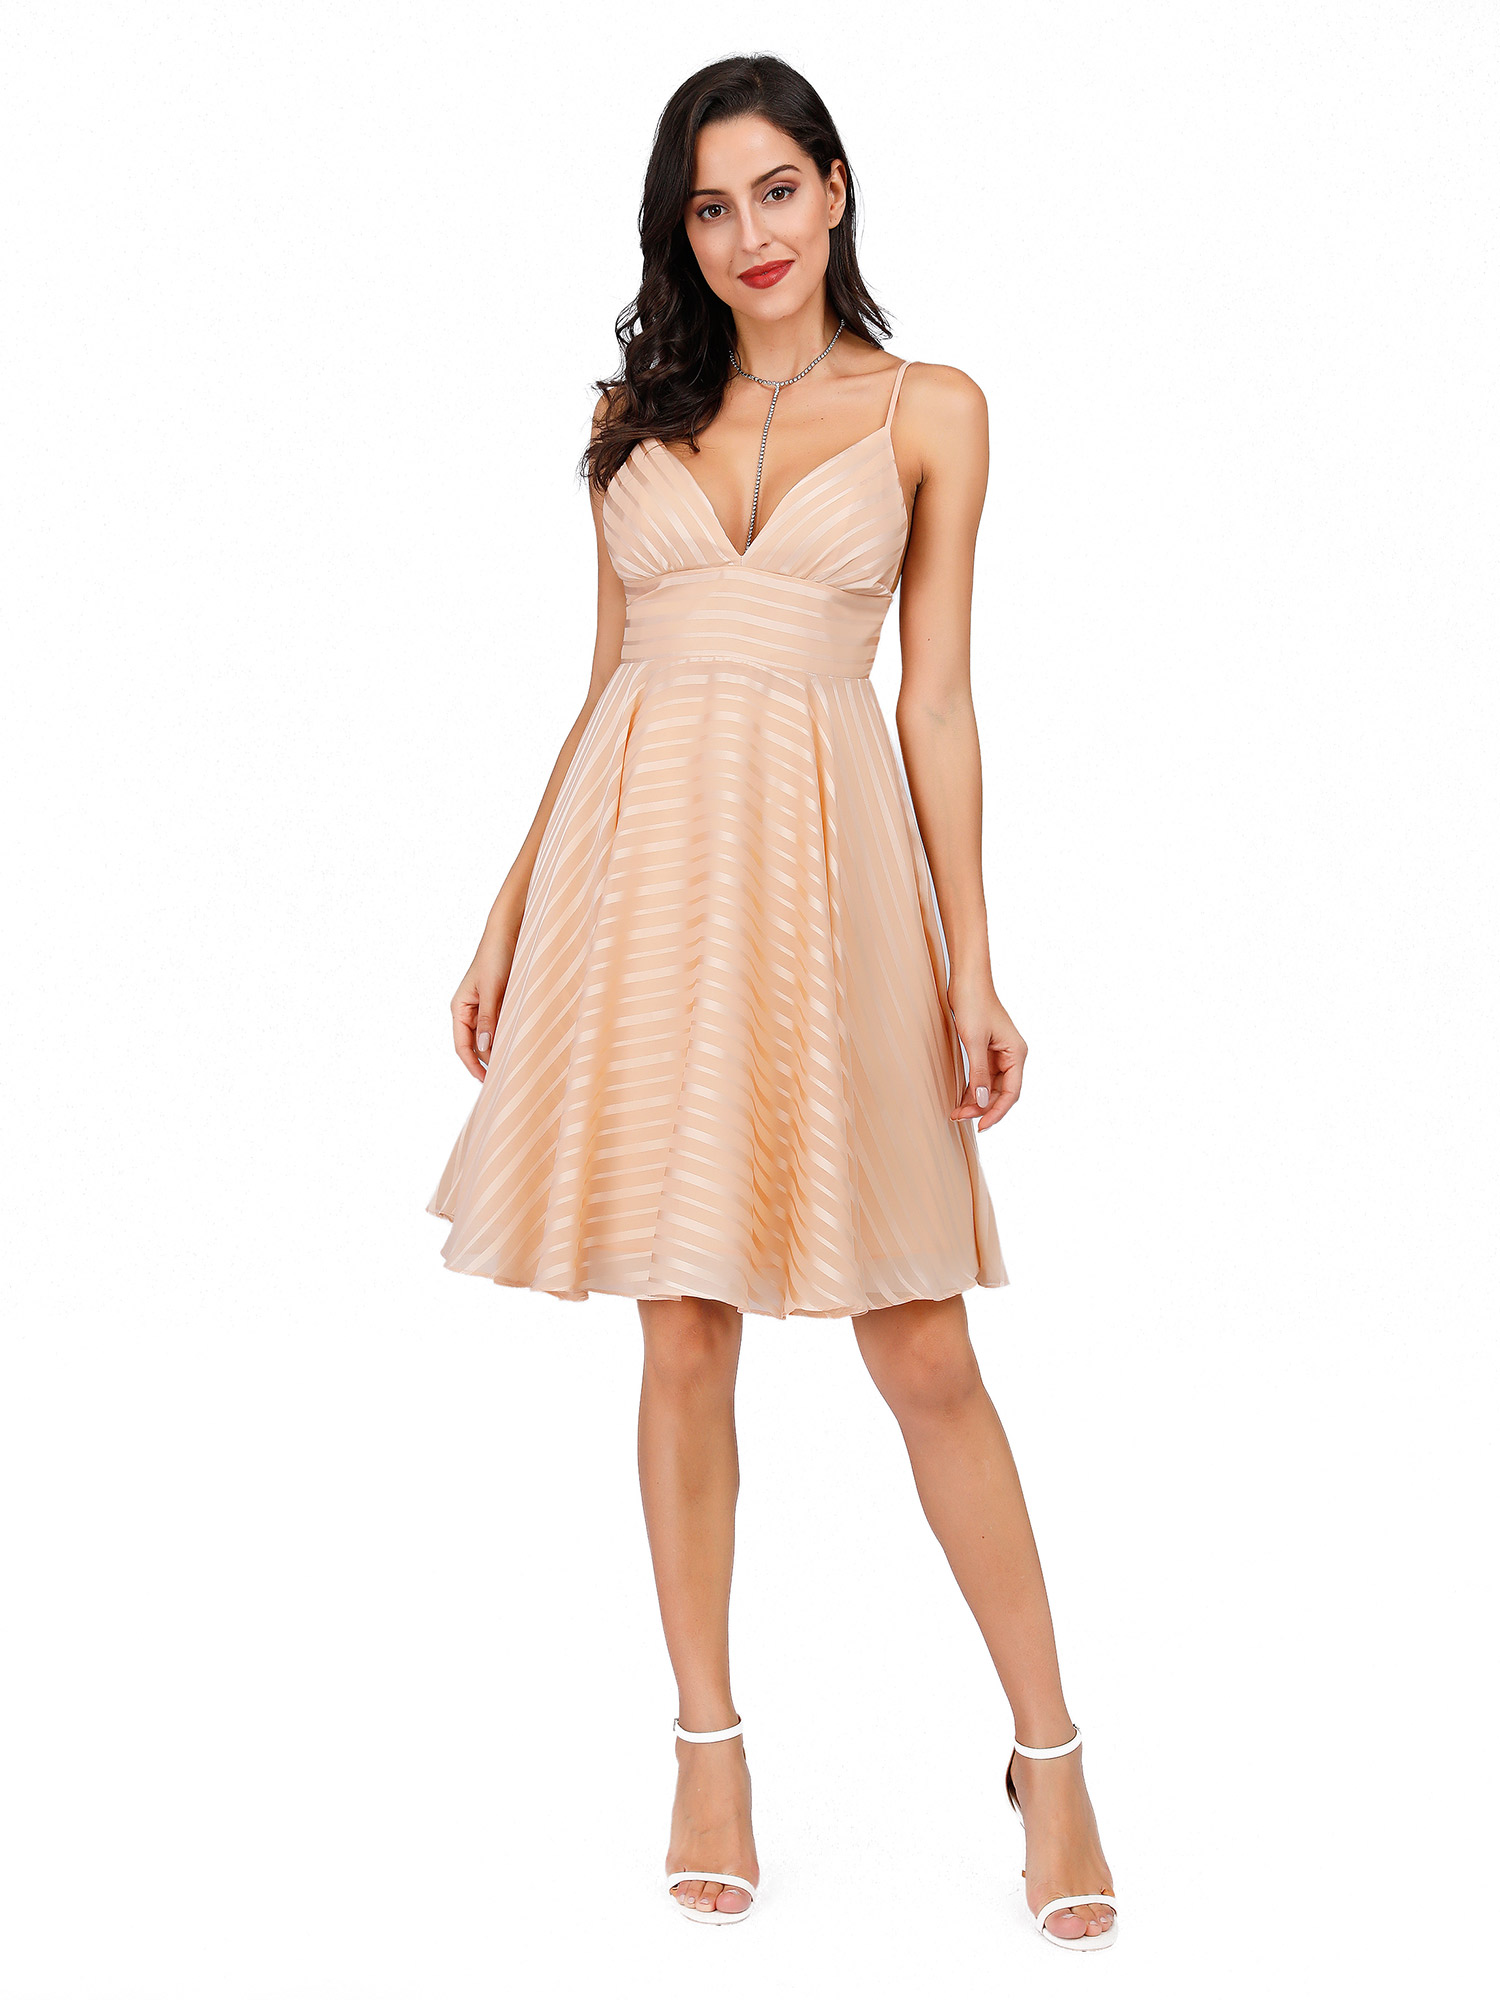 bd6122c5204 Ever-pretty US Short V-neck Cocktail Party Dresses Homecoming ...